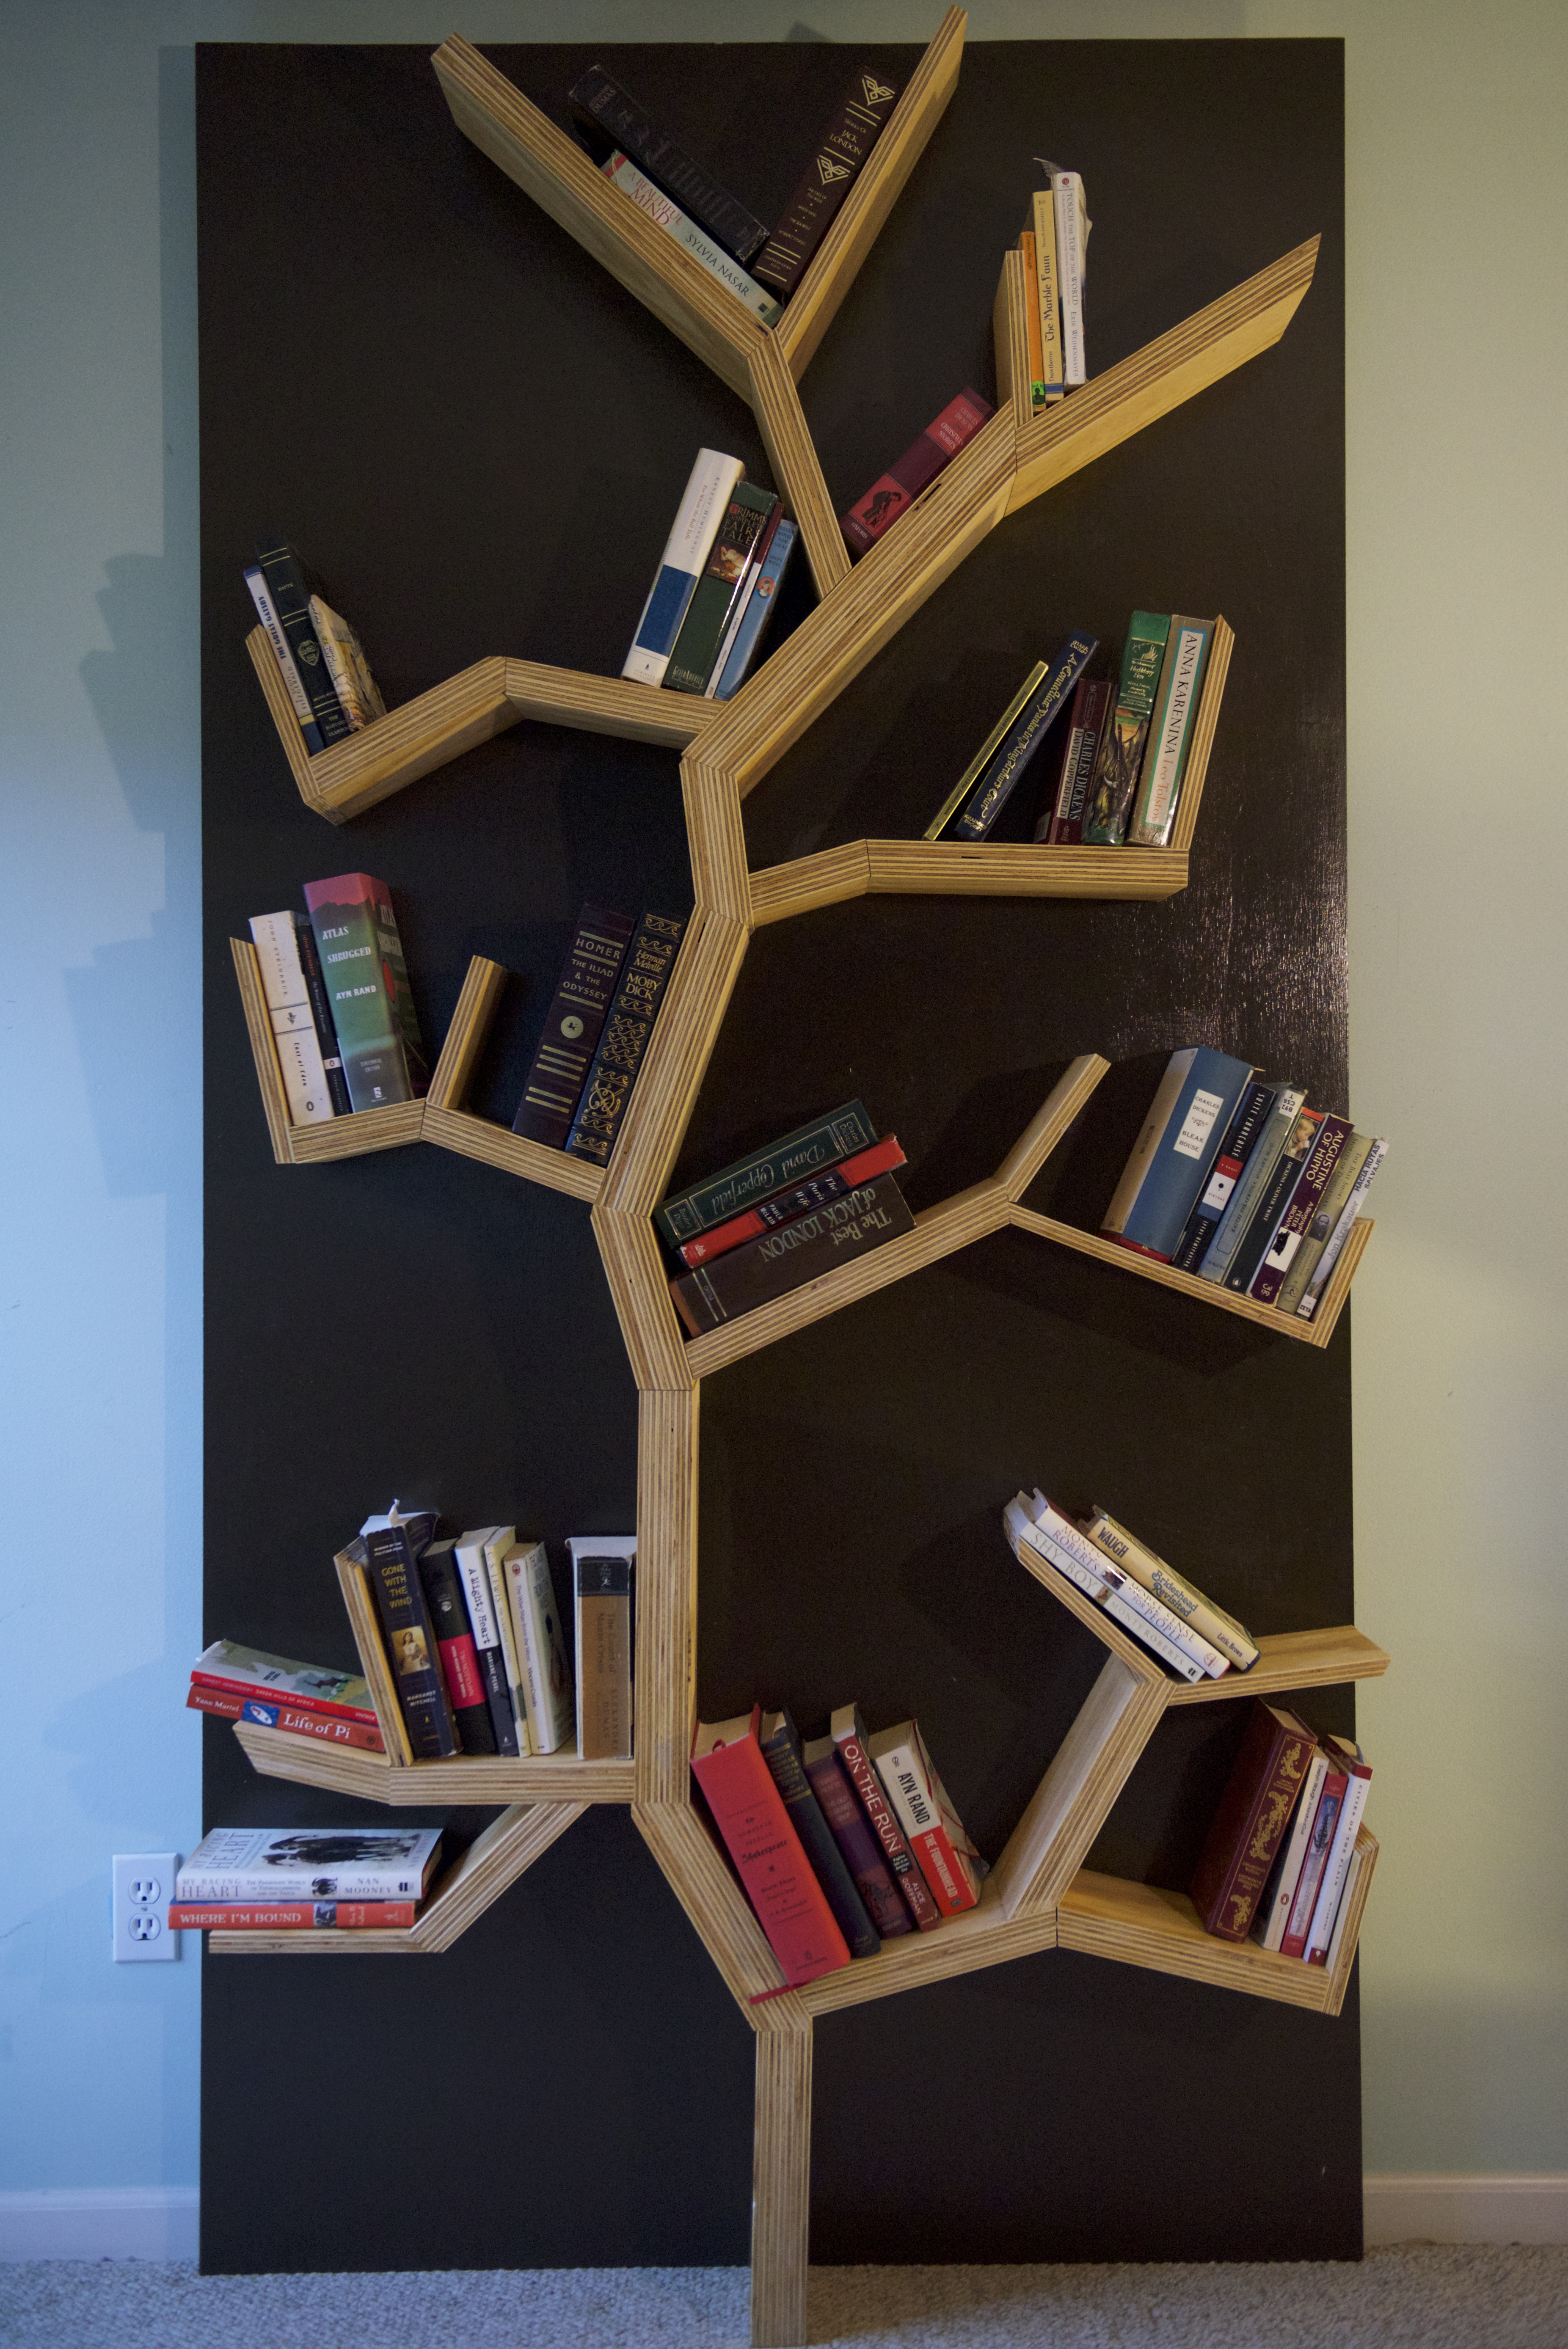 Tree Bookshelf Diy 5 Steps With Pictures Instructables